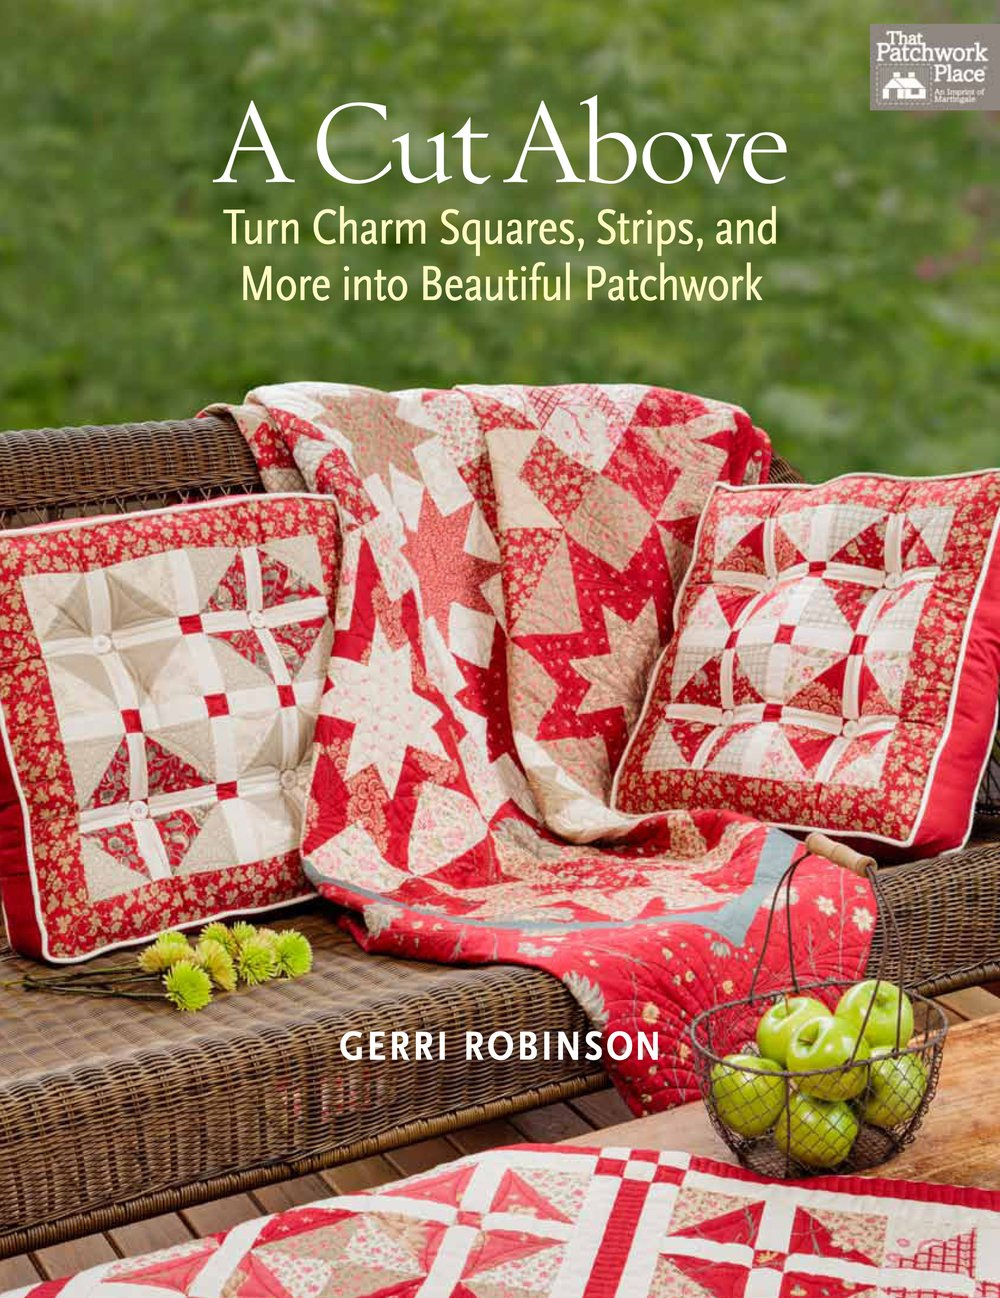 A Cut Above Turn Charm Squares Strips and More into Beautiful Patchwork